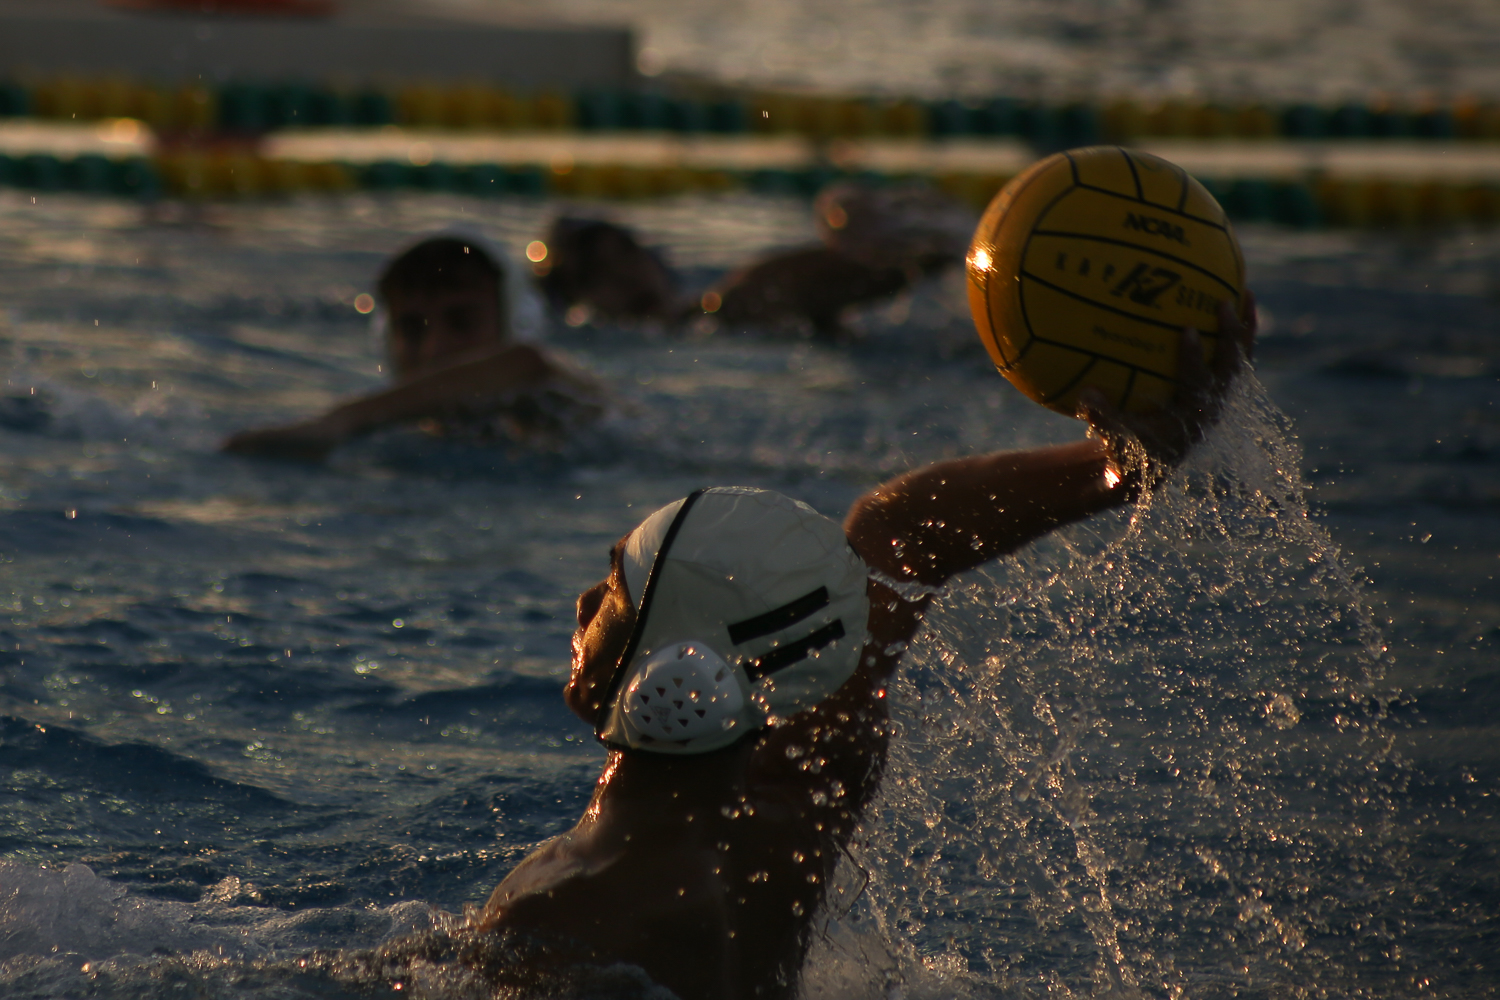 waterpolo_jacquelinecuervo-6.jpg